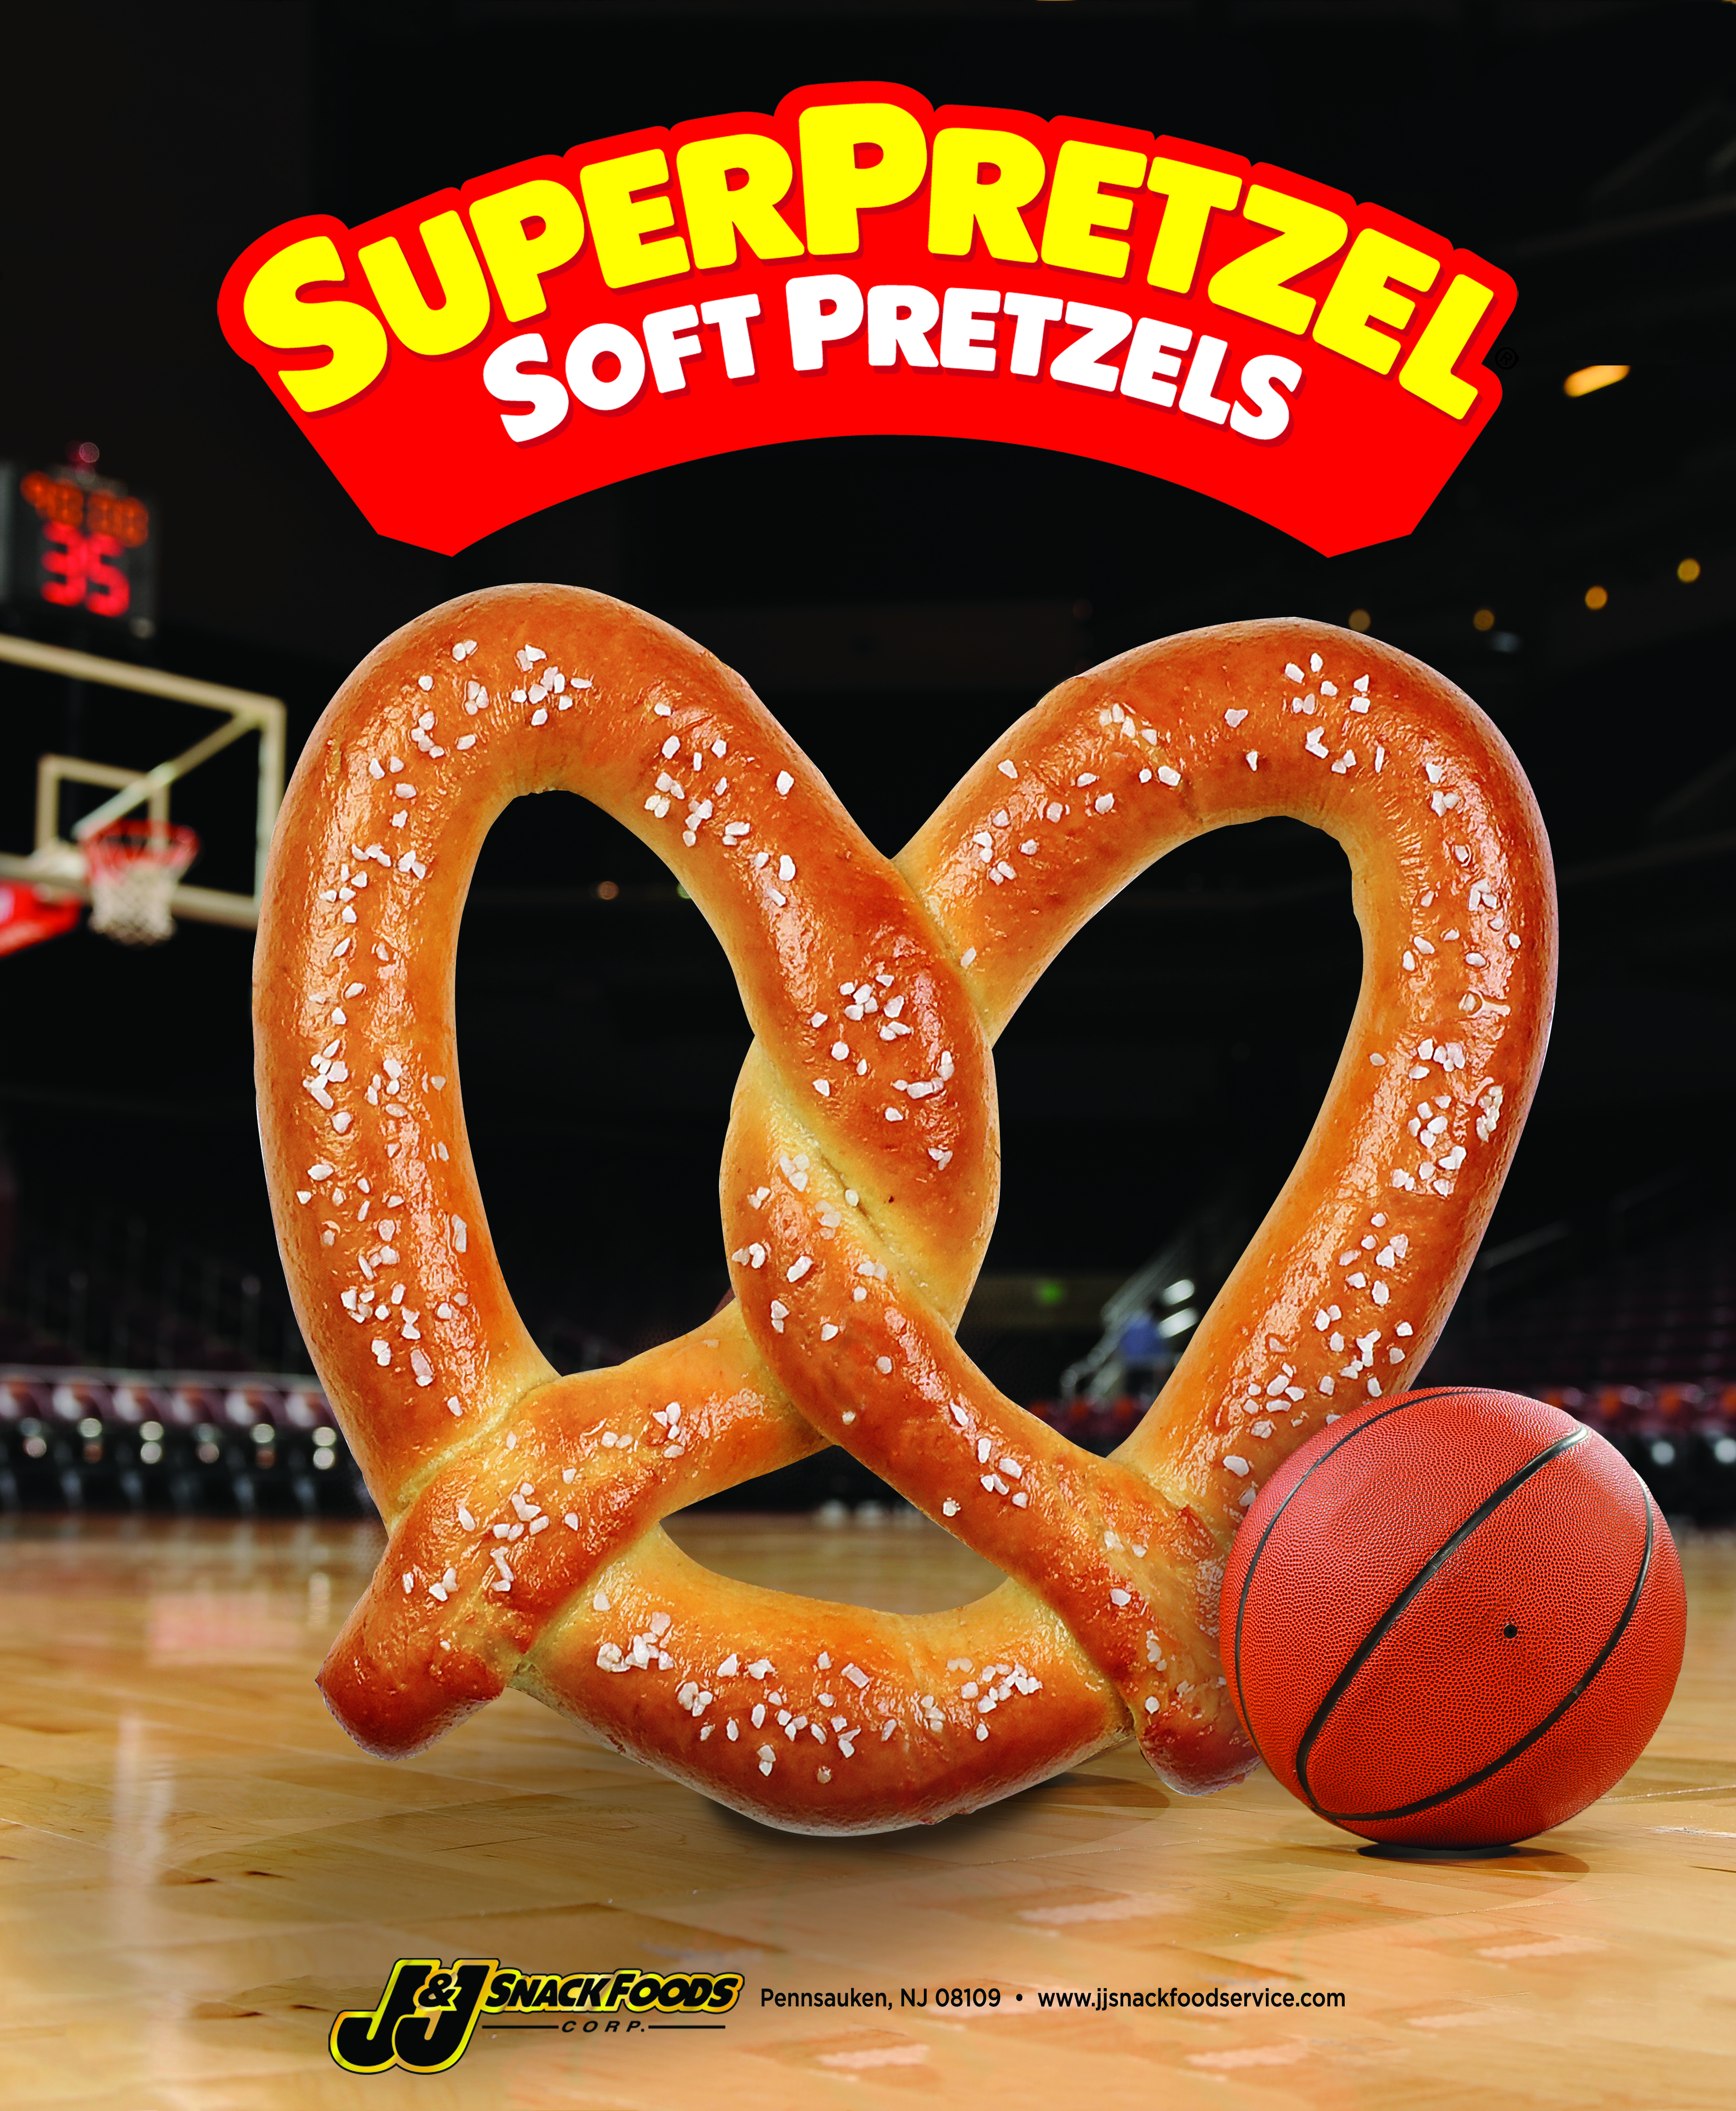 SUPERPRETZEL® Soft Pretzel King Size Basketball Themed Poster